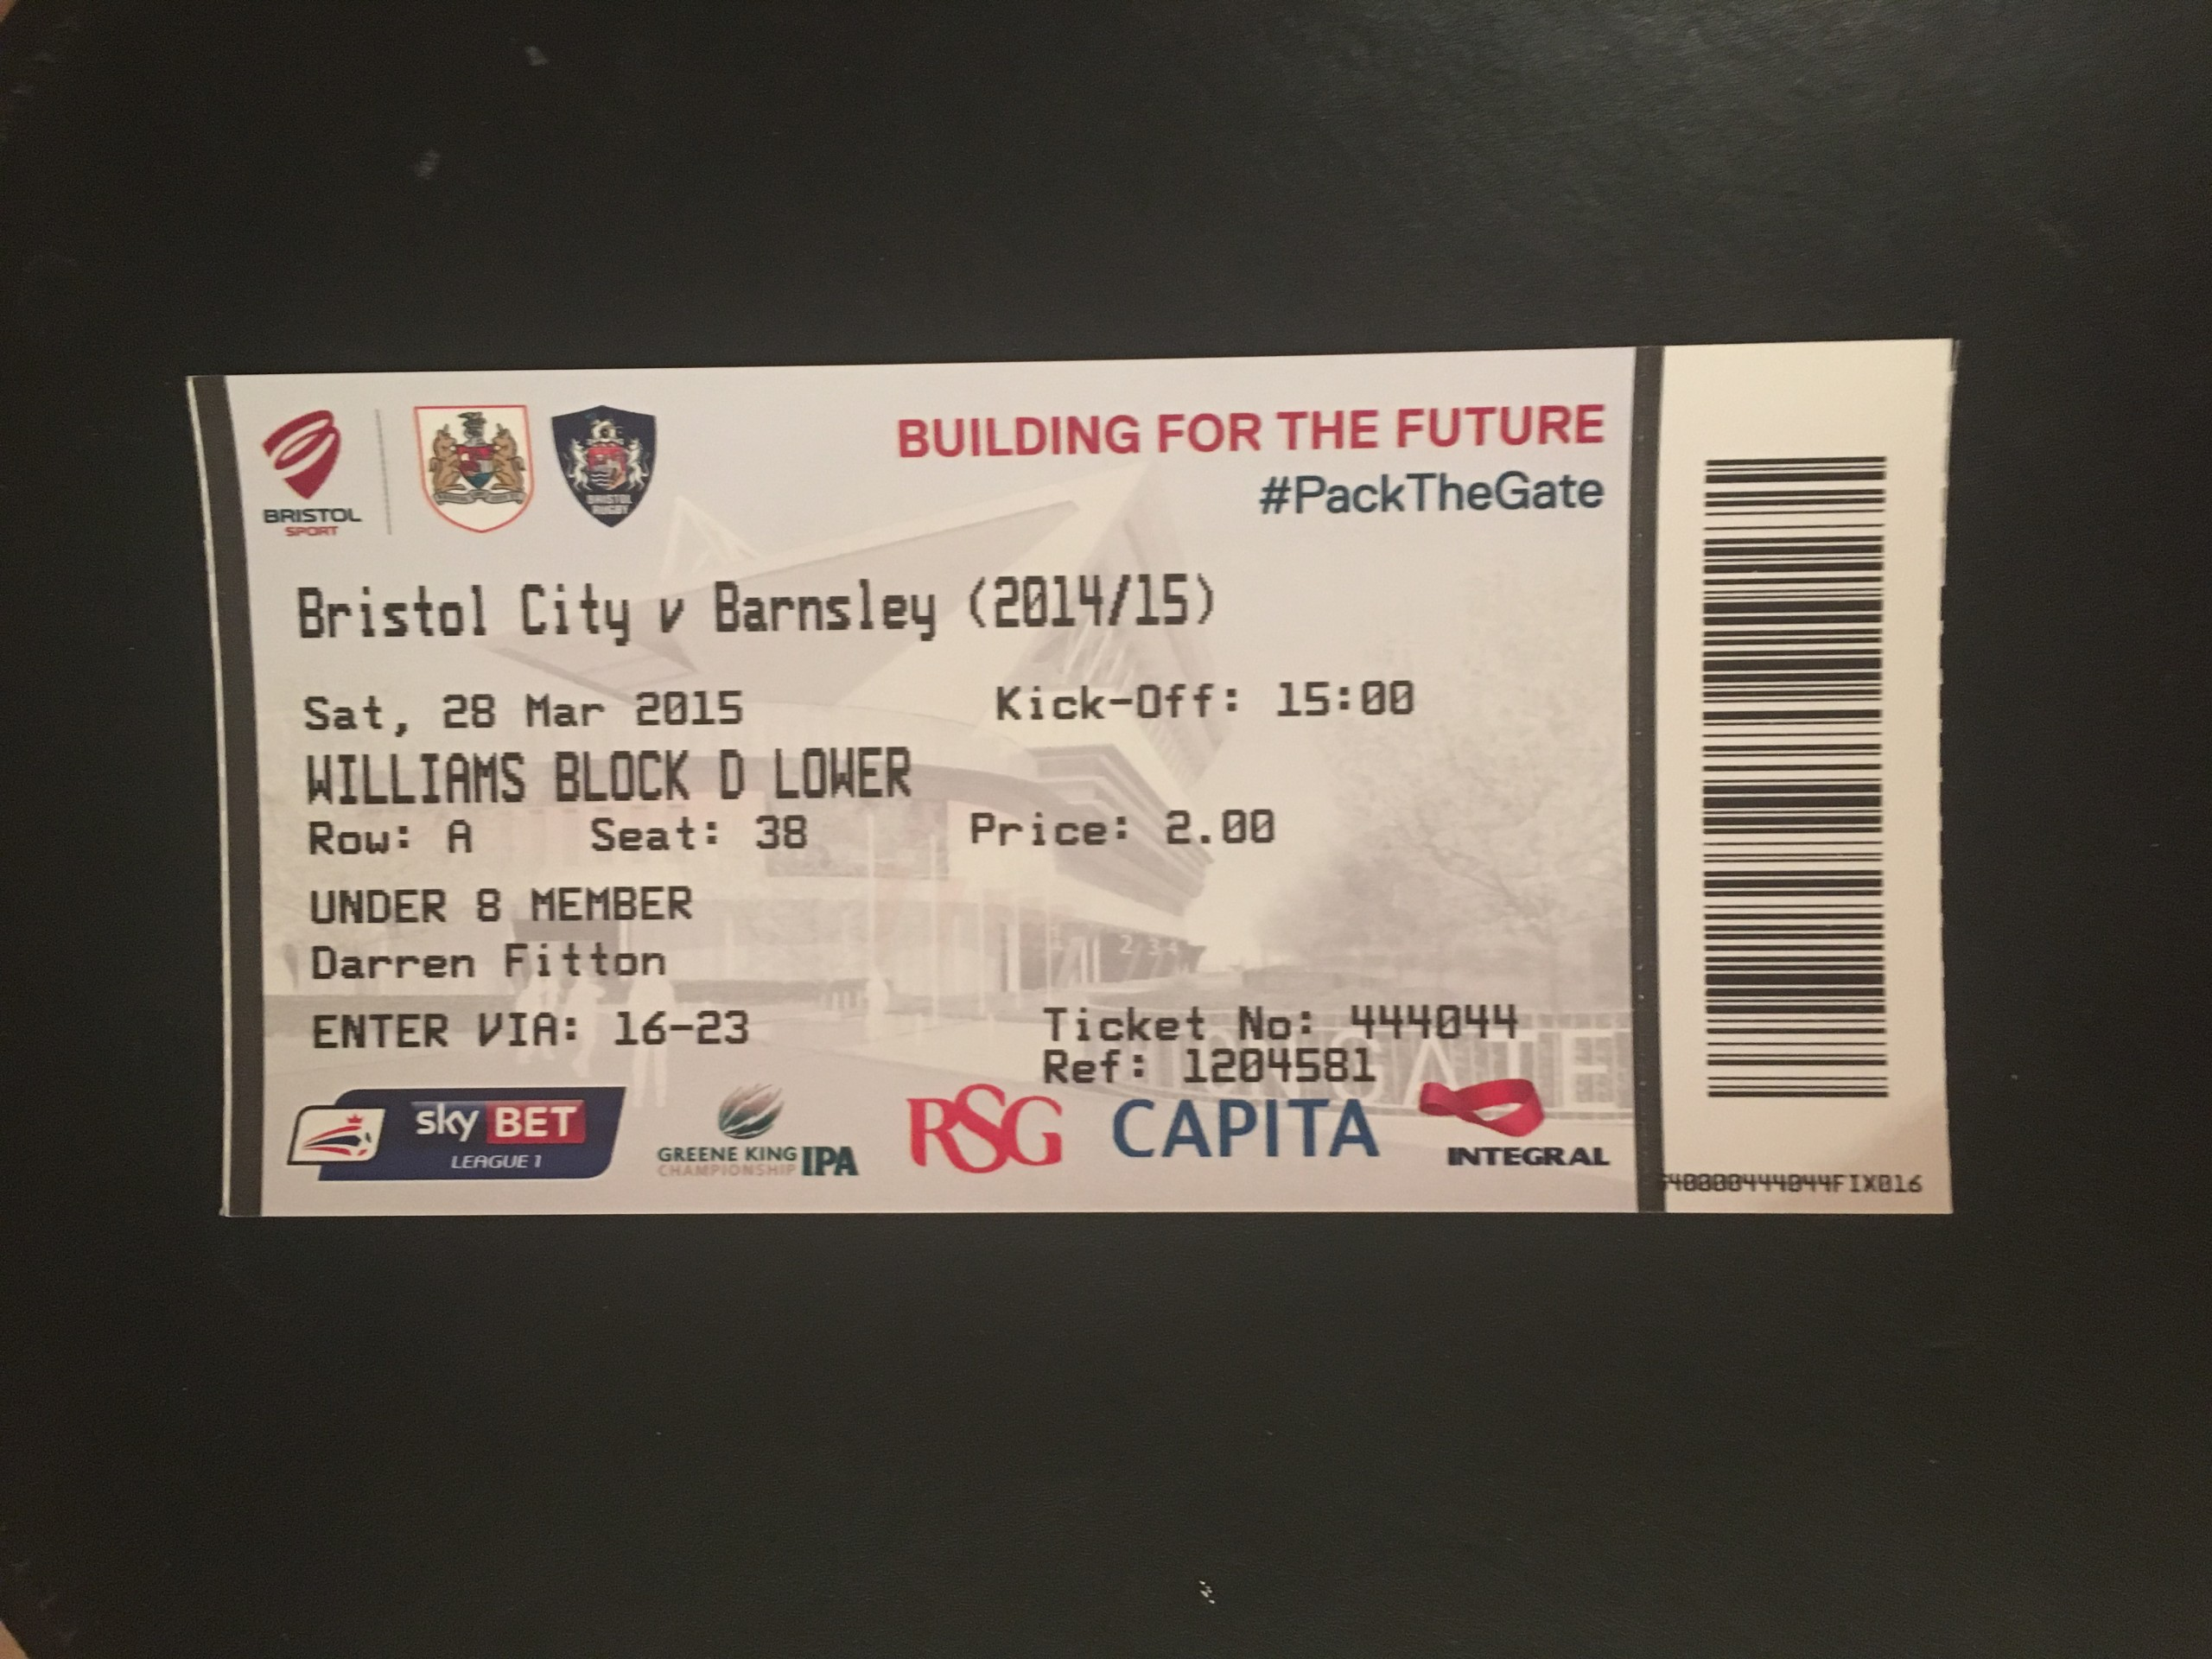 Bristol City v Barnsley 28-03-2015 Ticket